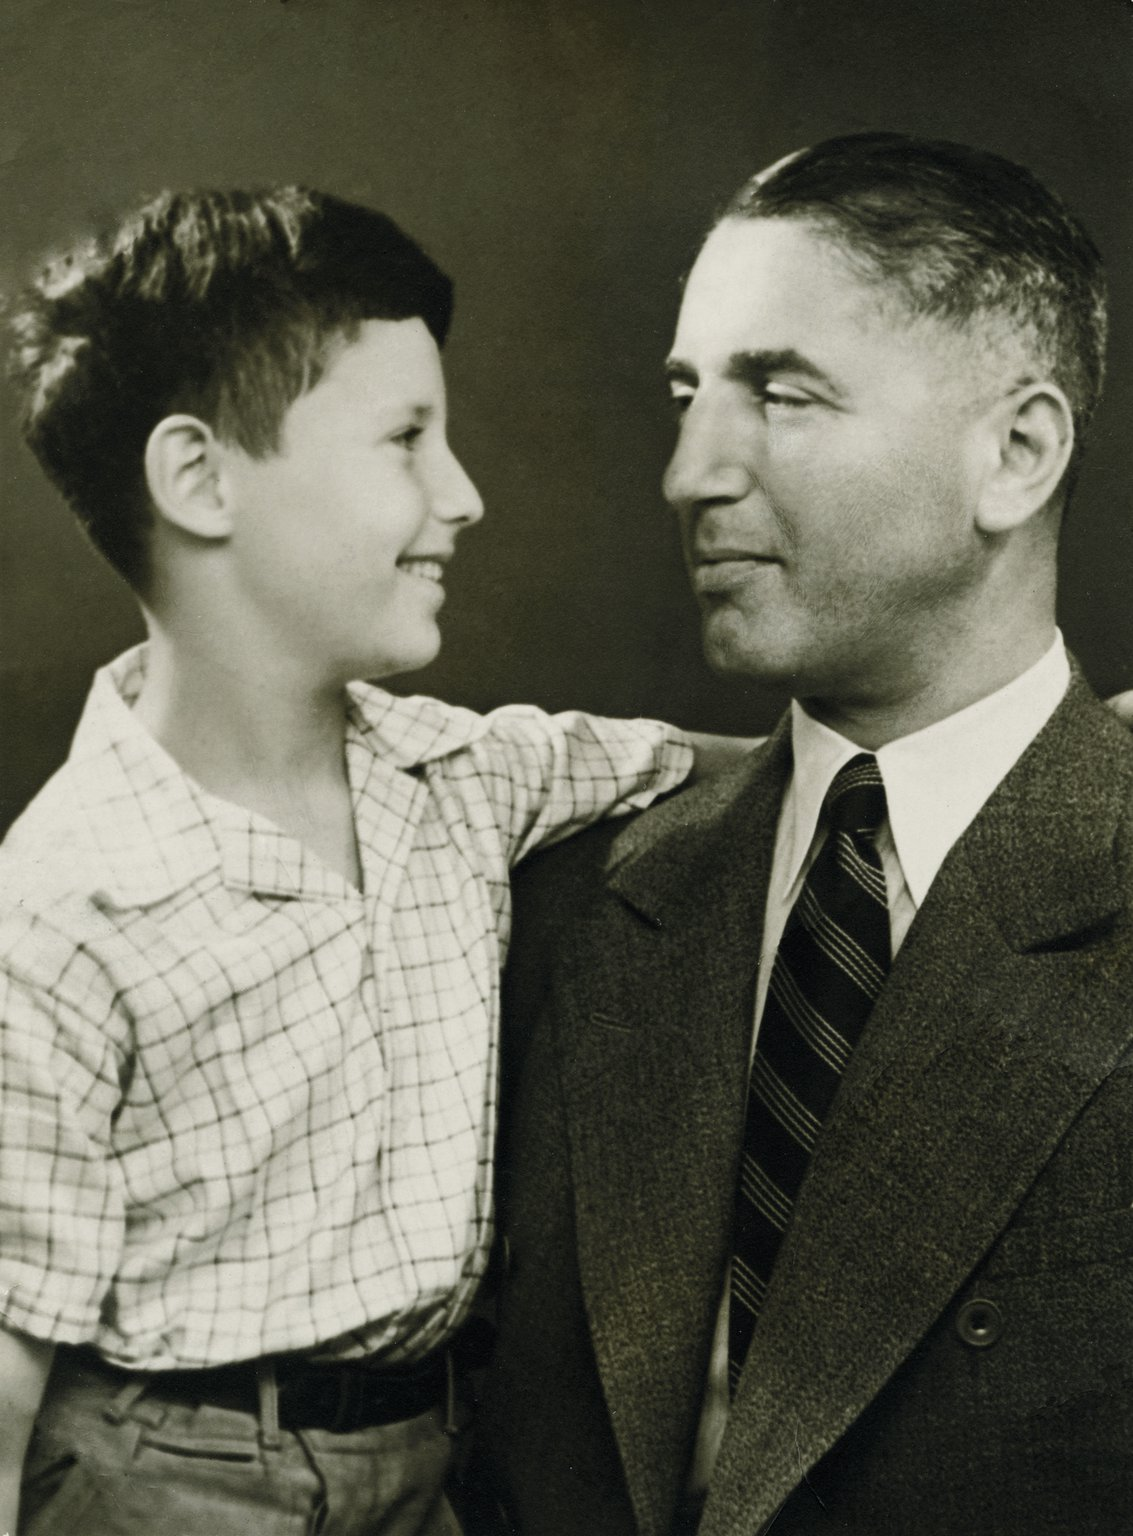 Fritz Pfeffer with his son Werner, around 1938. Werner survived the war and eventually moved to the US, where he assumed the name Peter Pepper. He died in 1995.